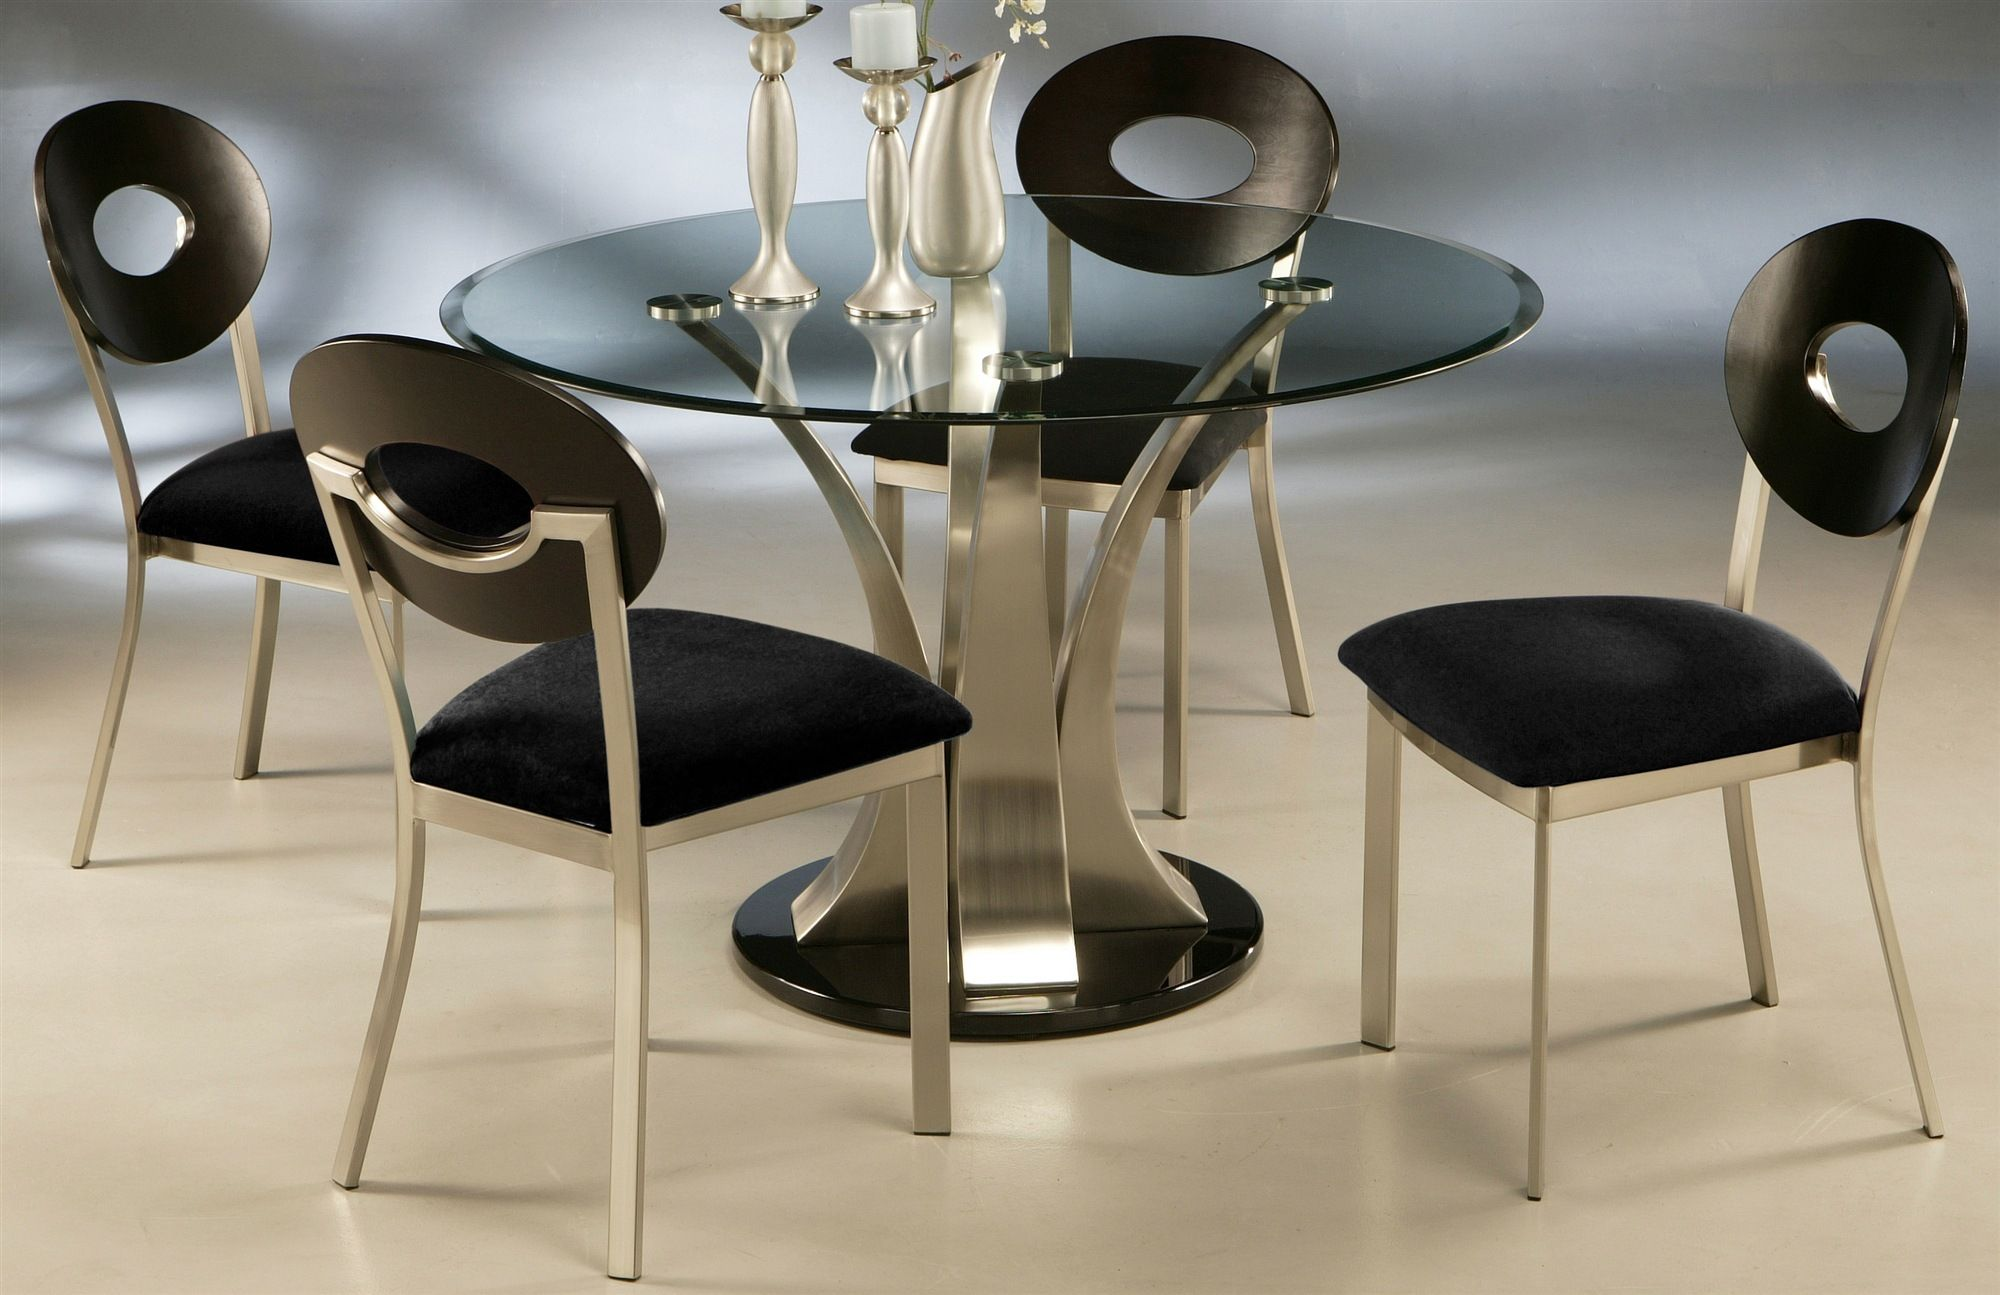 Glass Dining Room Tables Round Awesome Dining Table With Glass Top In Black Metal Finish  Doces Decorating Design